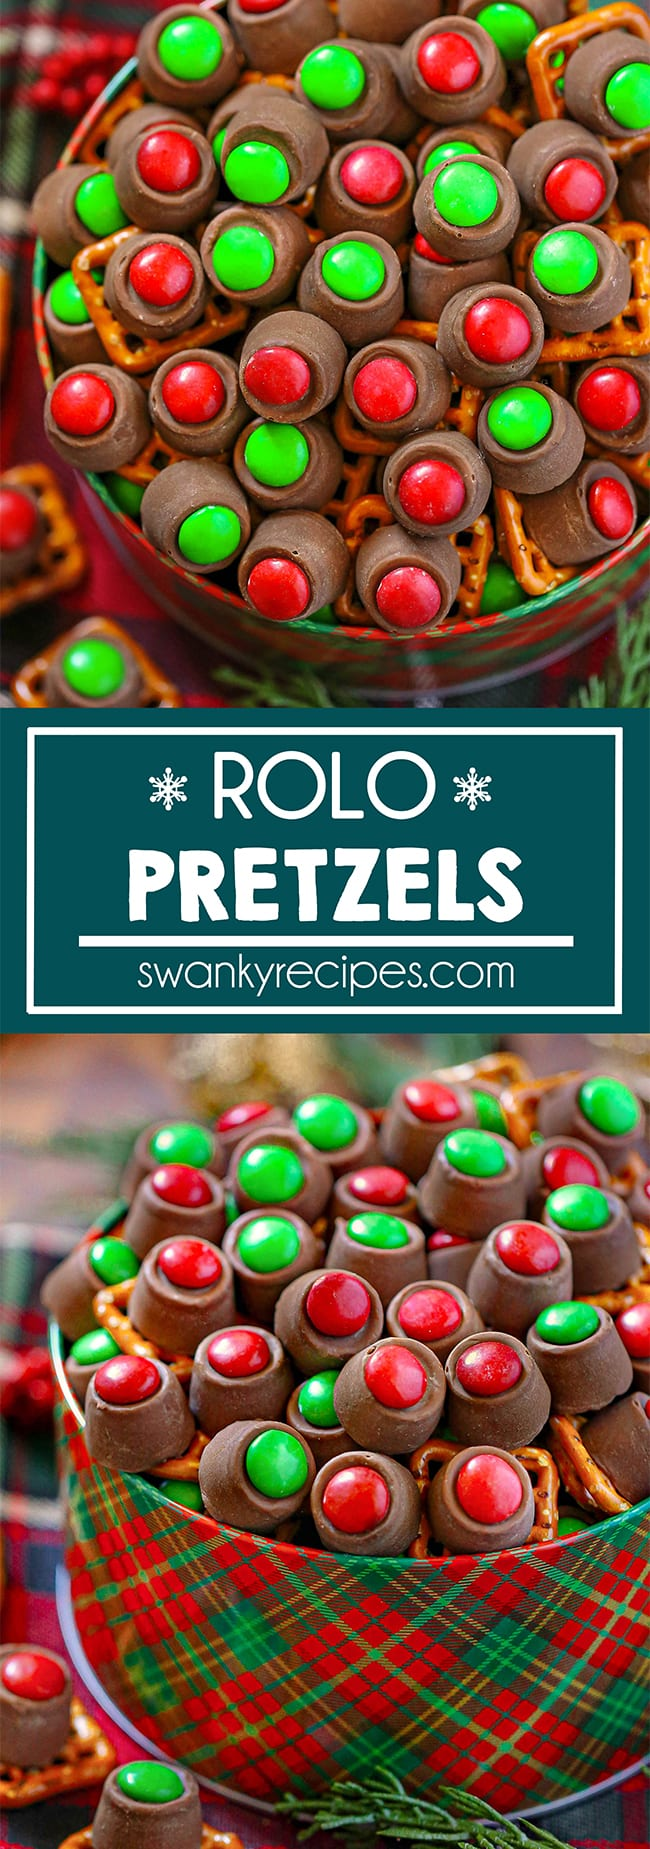 Easy Rolo Pretzels - Same as first photo, but cropped very close to include the bottom half the tin full with rolo pretzels.. Overhead view of a red and green Christmas pattern on a tin filled to the brim with rolo candy pieces. Red and green M&Ms topped on a rolo candy piece with a square pretzel. Served on a red and green Text in center reads Rolo Pretzels in blue and white. Second image A front view of Rolo pretzels with a red/green M&M on top of a rolo candy pieces and pretzel square. Served in a red and green striped holiday tin on a wooden back drop with a Christmas color napkin and a fake green spruce tree twig.